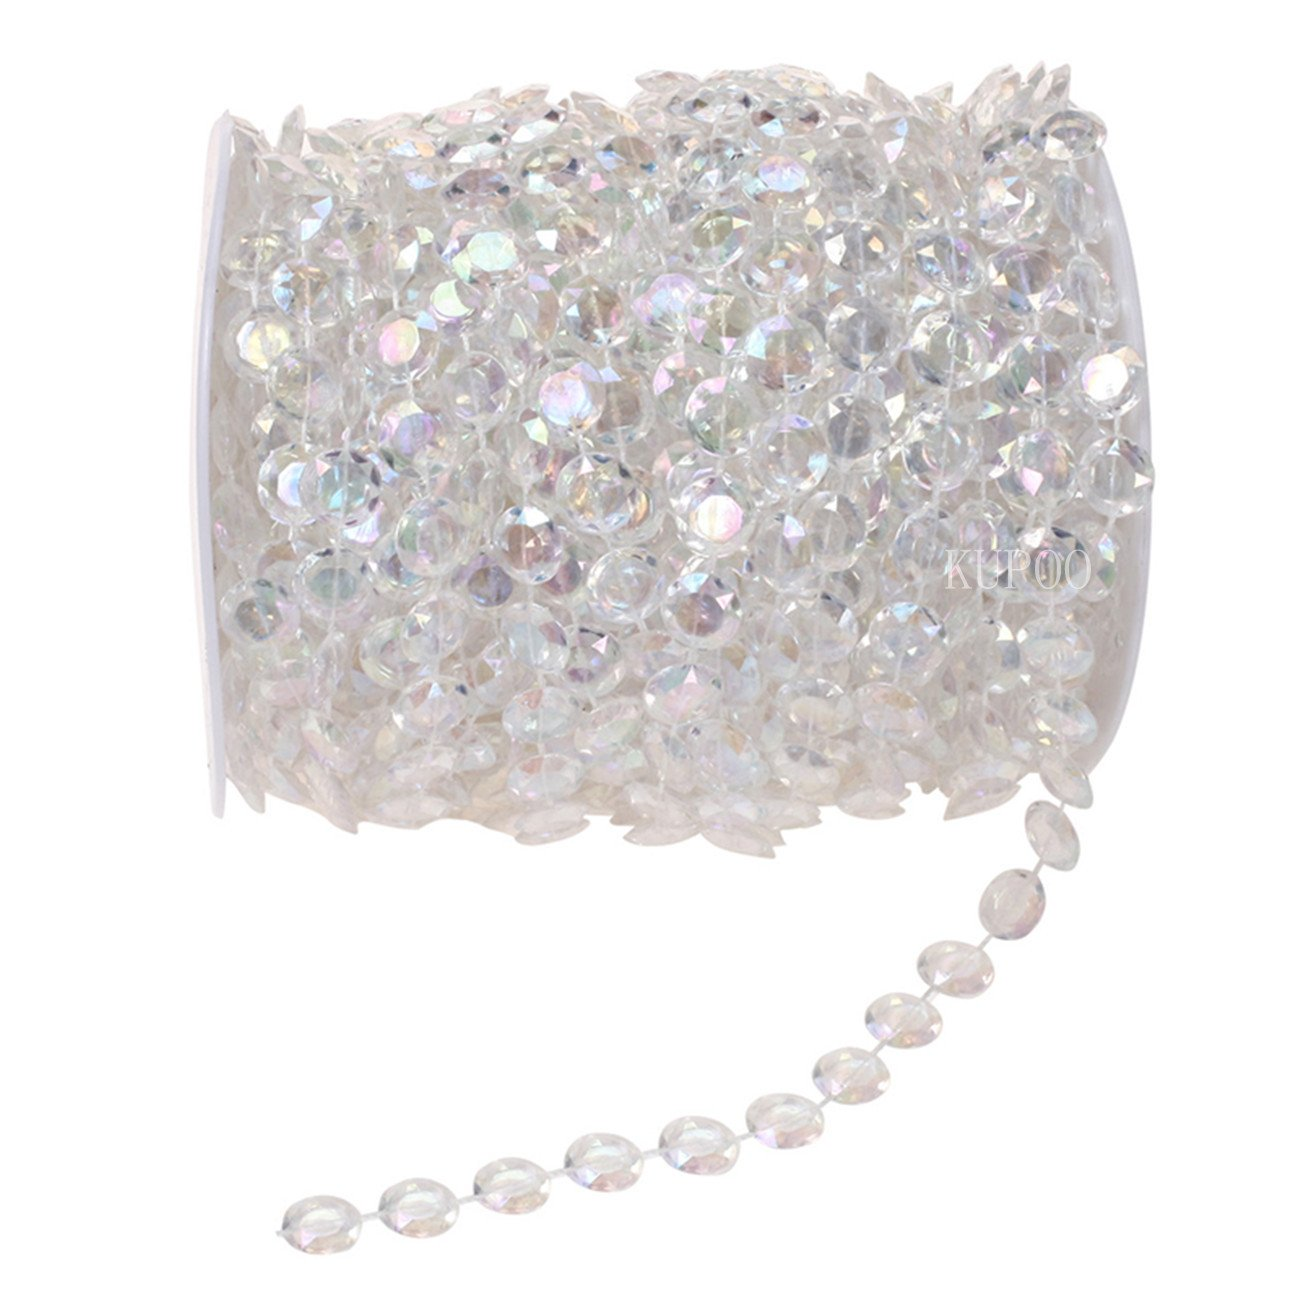 Best Crystal Decorations For Wedding Amazon